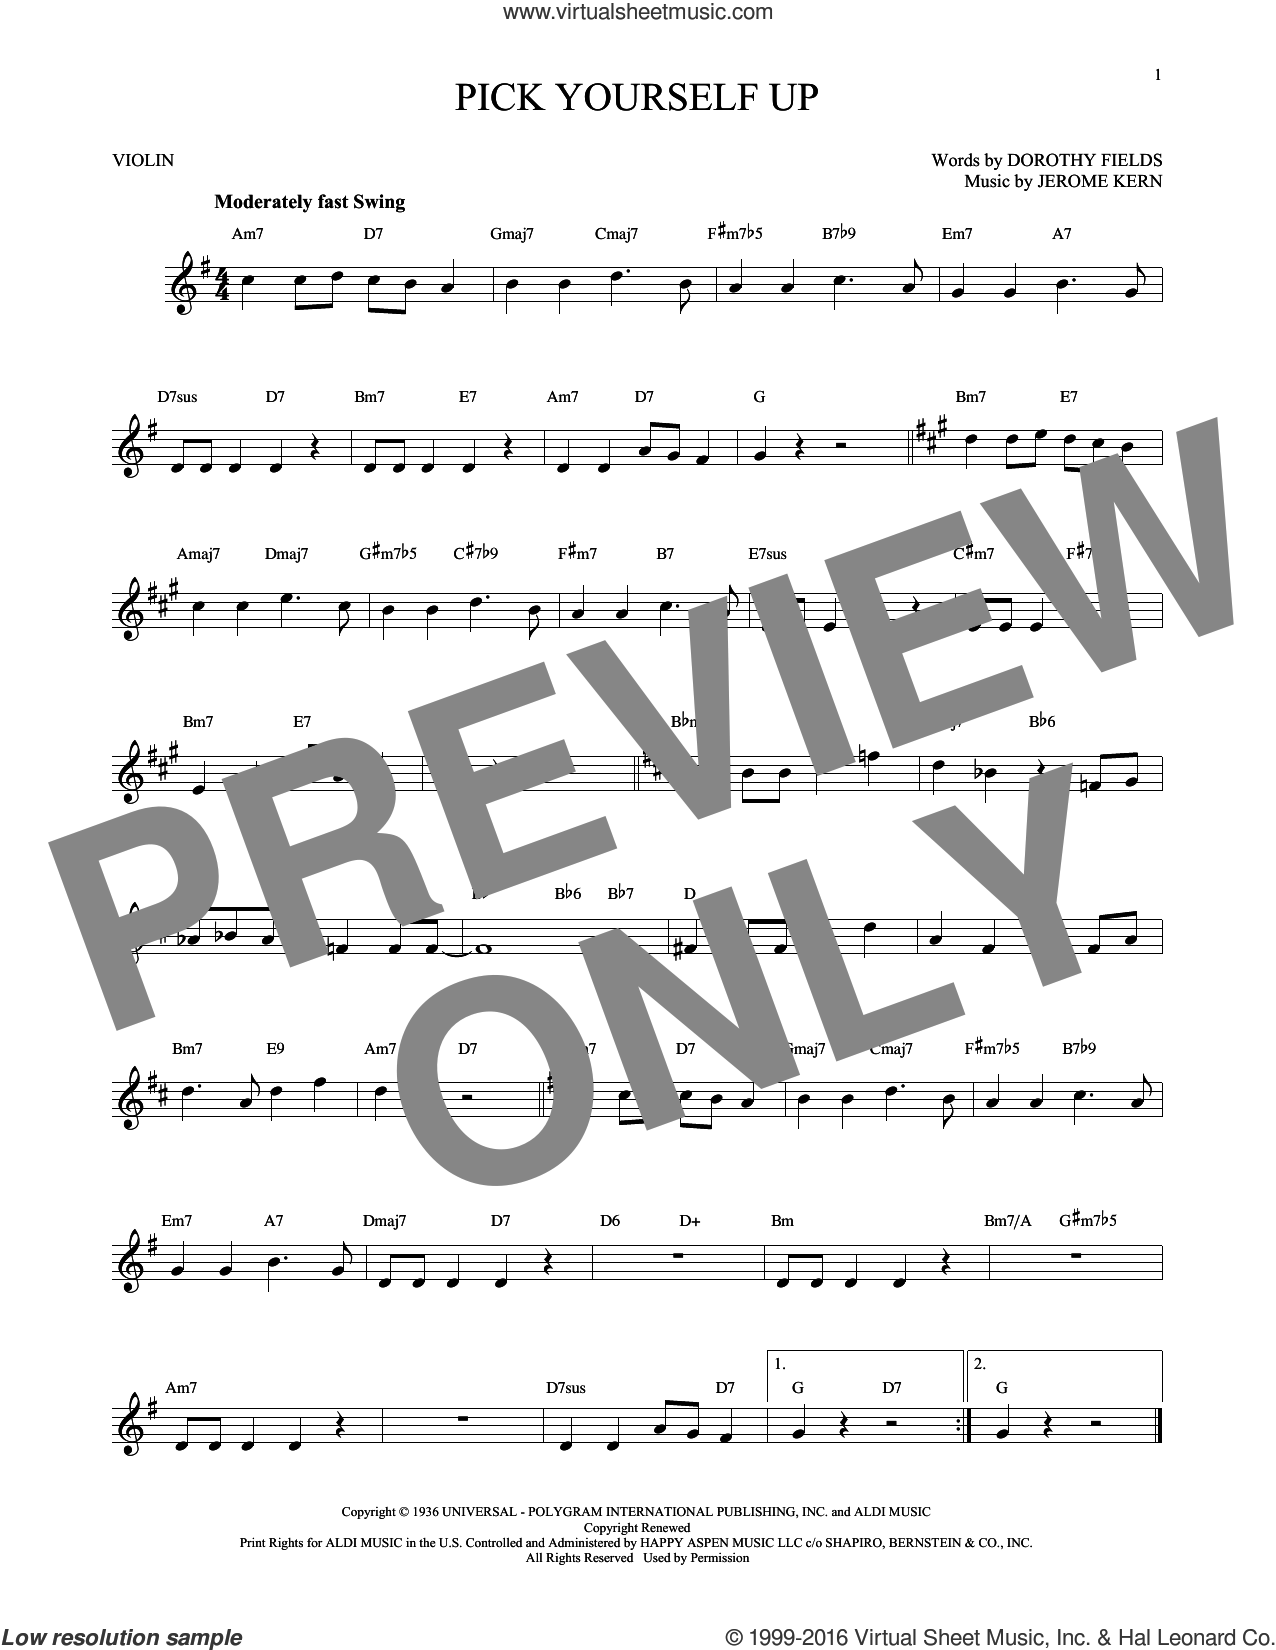 Pick Yourself Up sheet music for violin solo by Dorothy Fields and Jerome Kern. Score Image Preview.